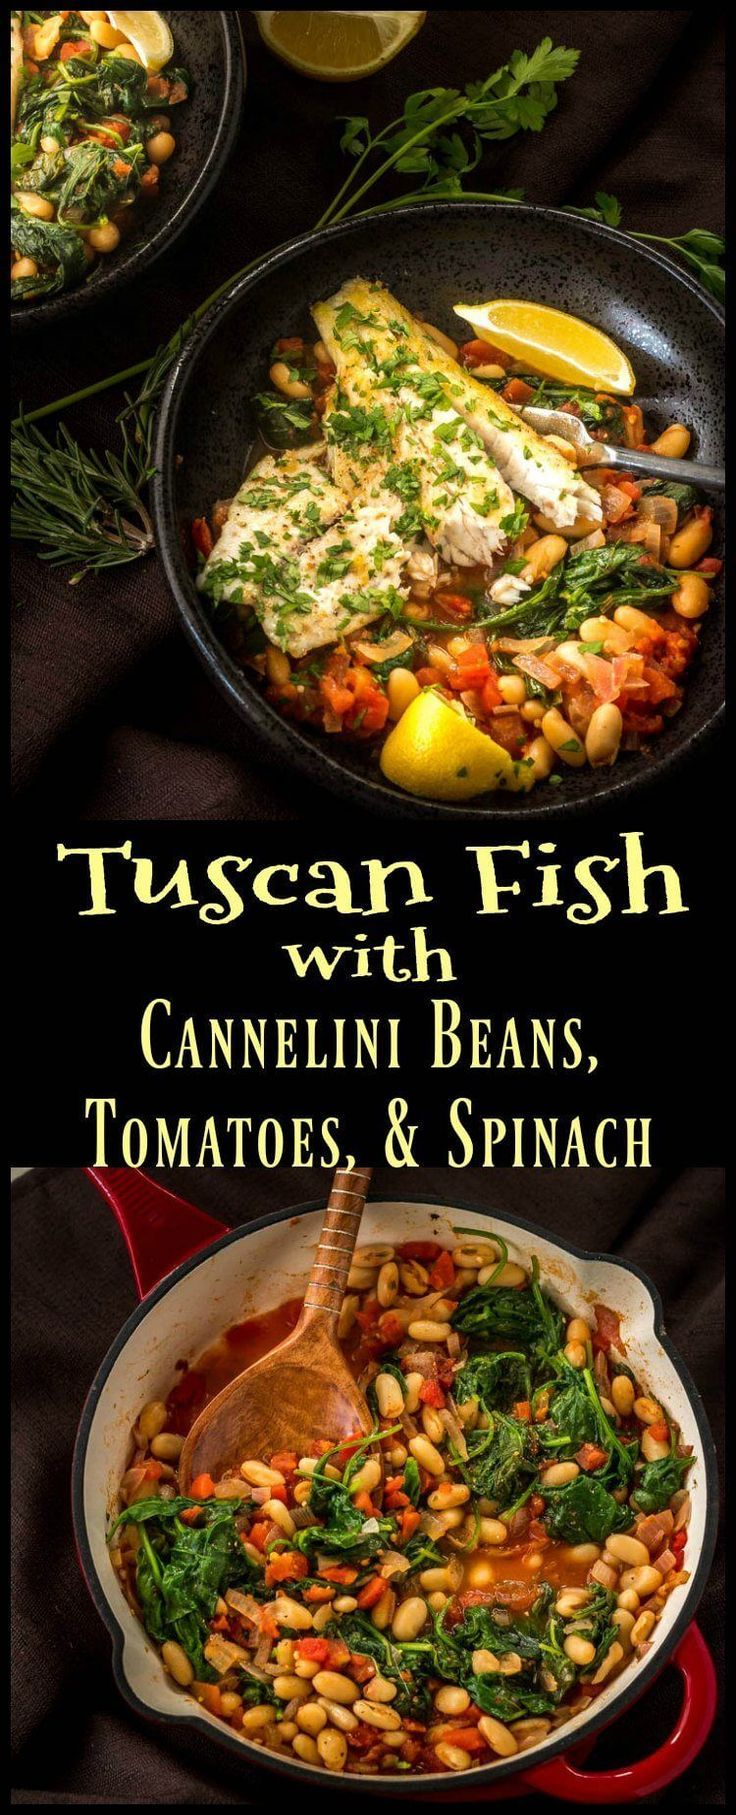 A quick, healthy, and delicious way to prepare inexpensive fish fillets! Tuscan Fish with Cannelini Beans, Tomatoes, and Spinach packs lots of bold flavor in a one-dish meal… #barramundi #tuscanfish #easyfishrecipes #weeknightdinners